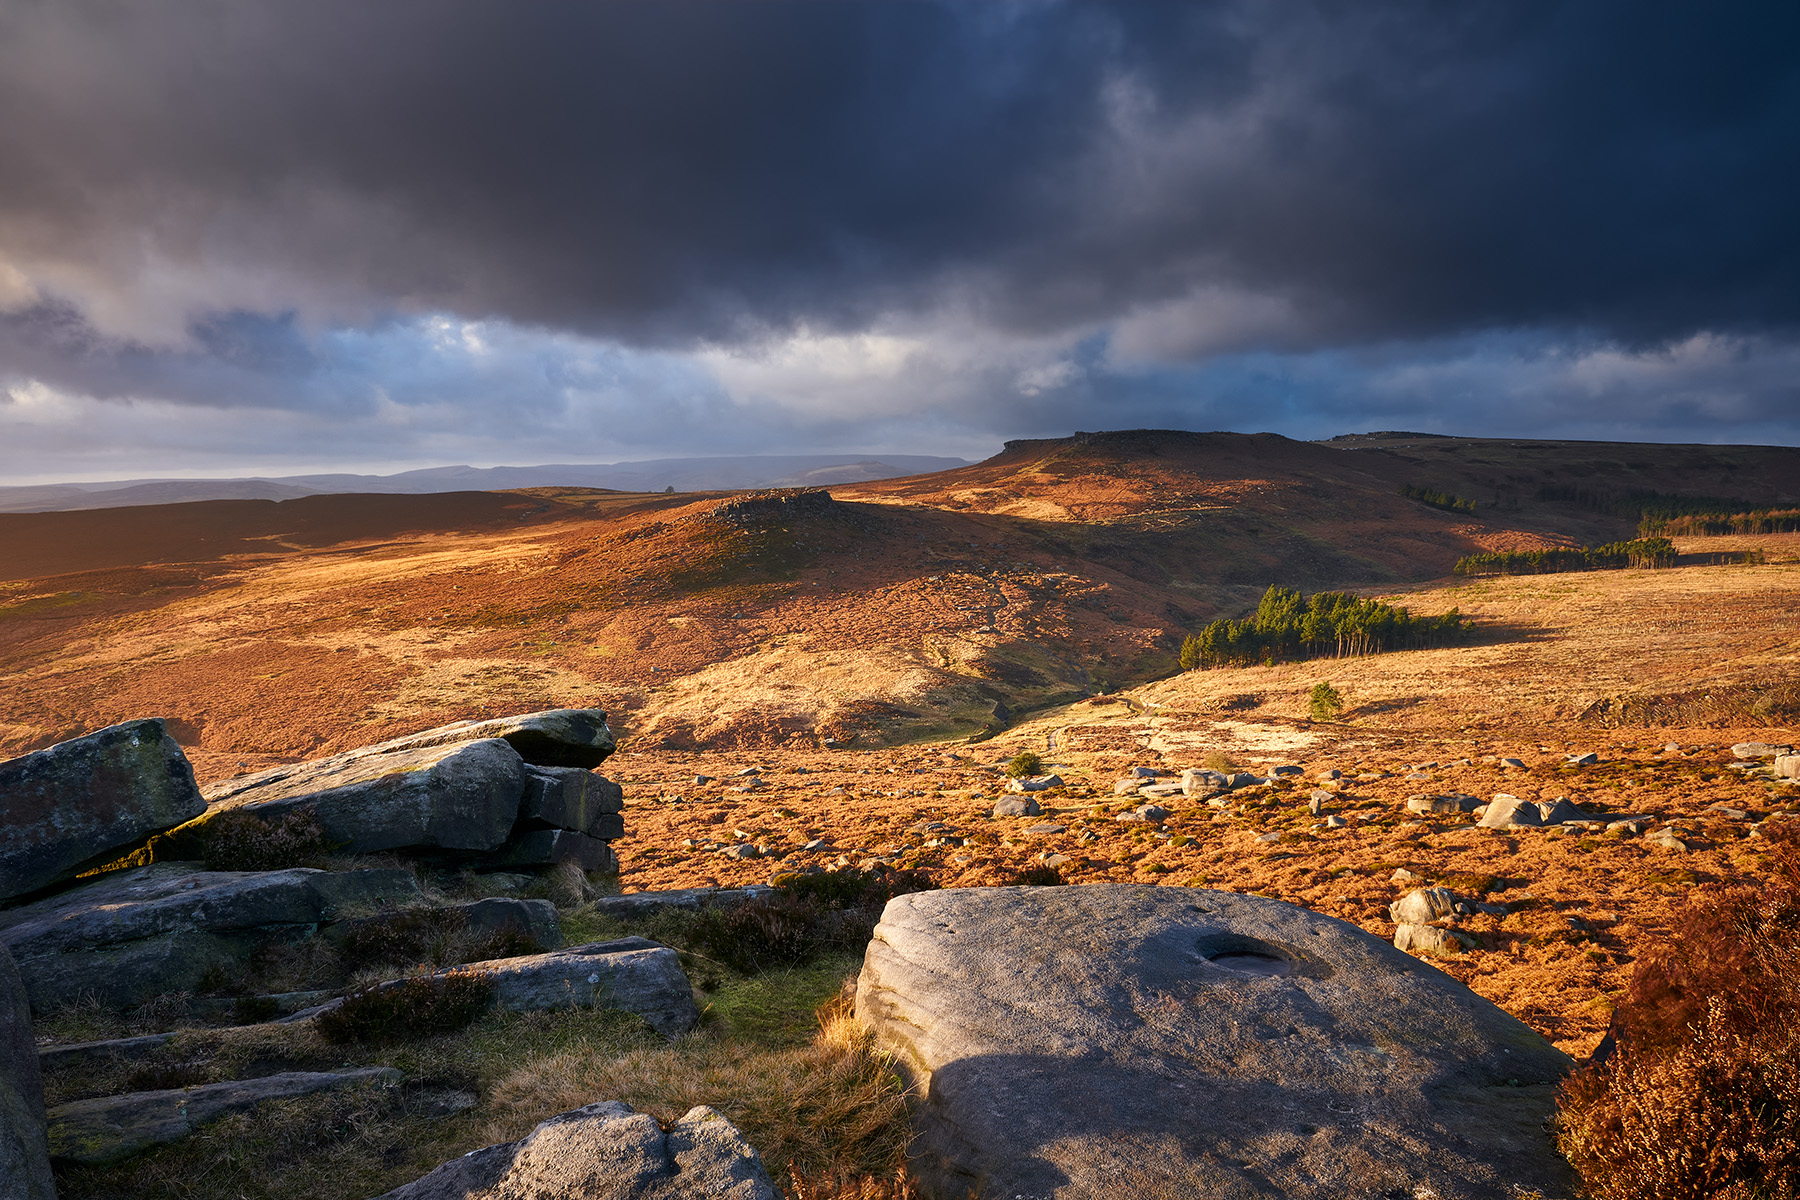 Landscape Photography Advice From 4 Images The Lightweight